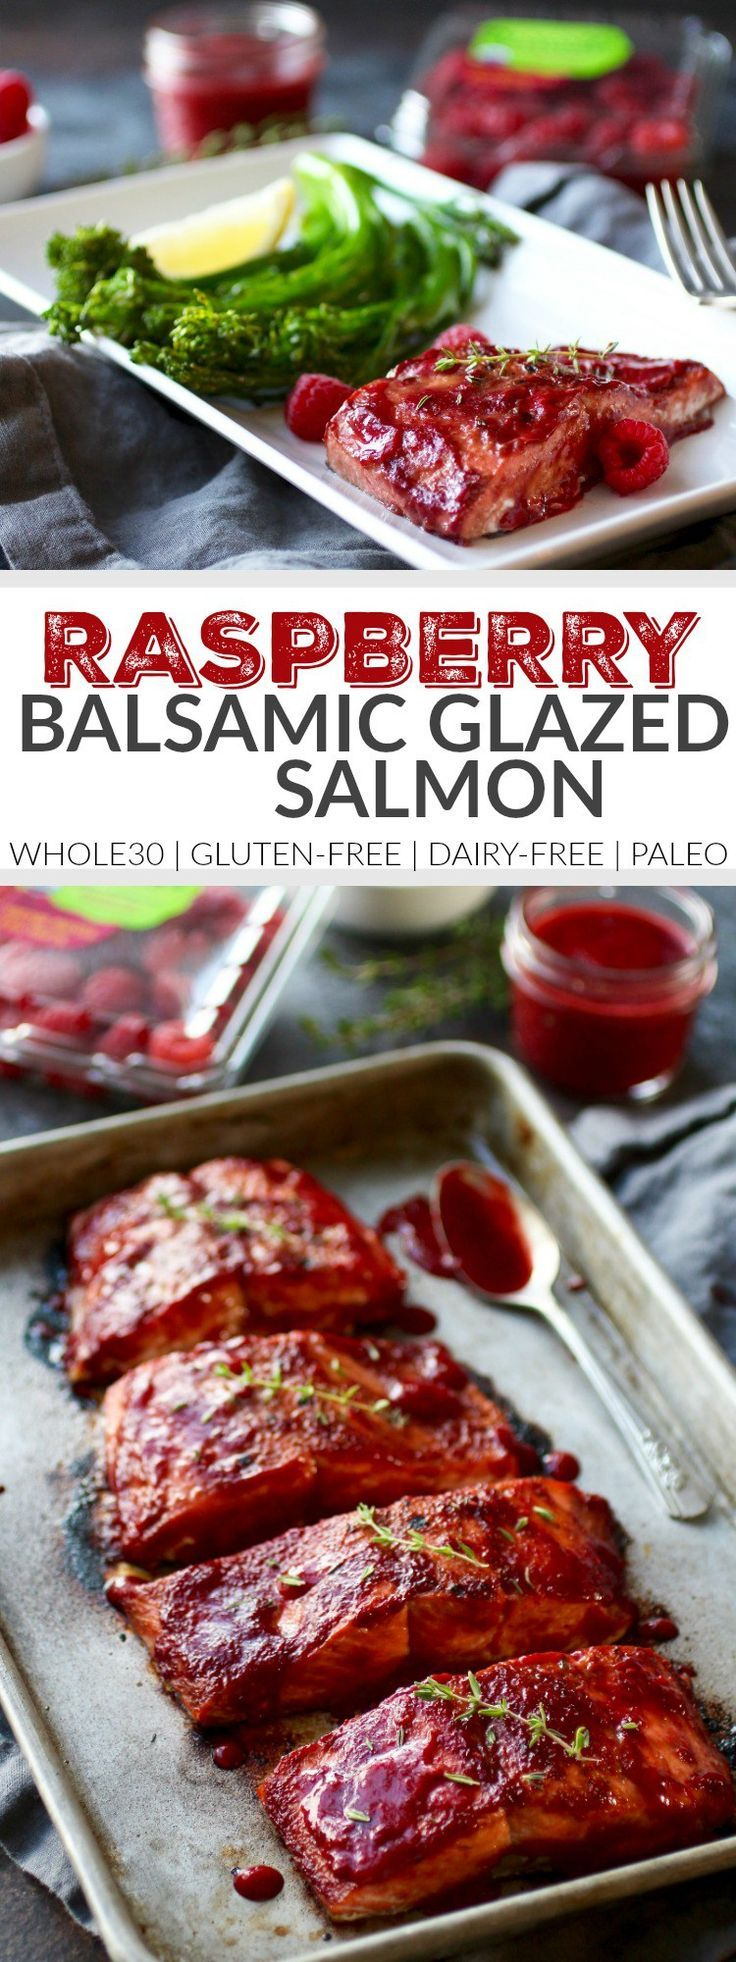 Raspberry Balsamic Glazed Salmon (Whole30) #justeatrealfood #therealfoodrds